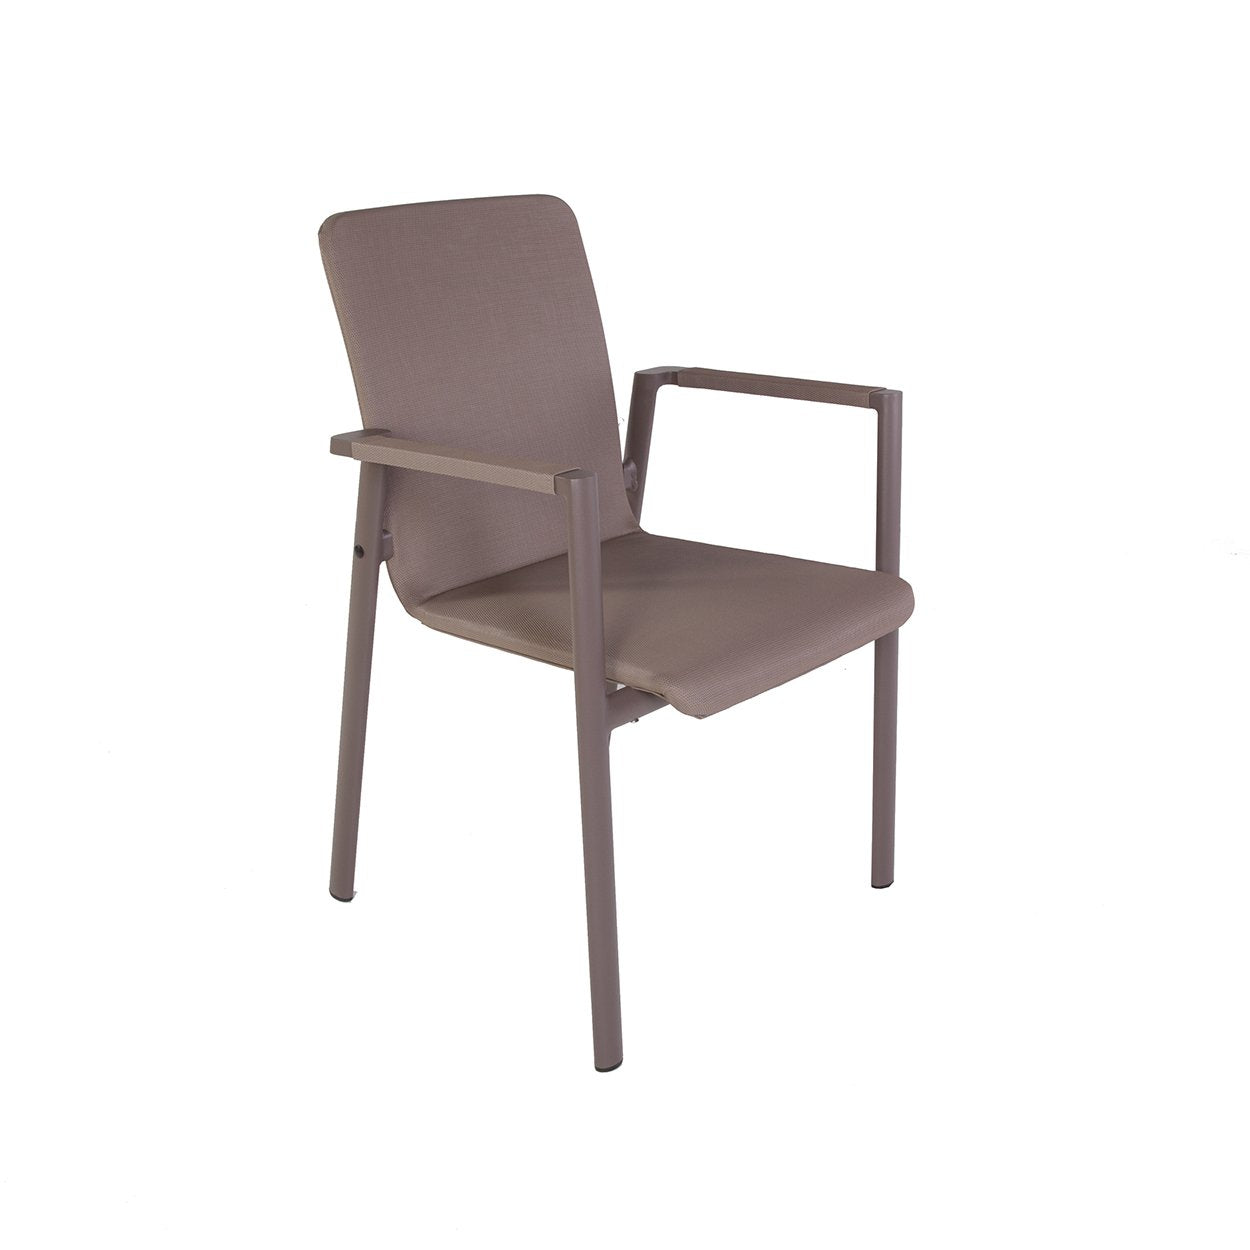 [FCC4104TAUPE] Forlanini Outdoor Dining Chair Sale